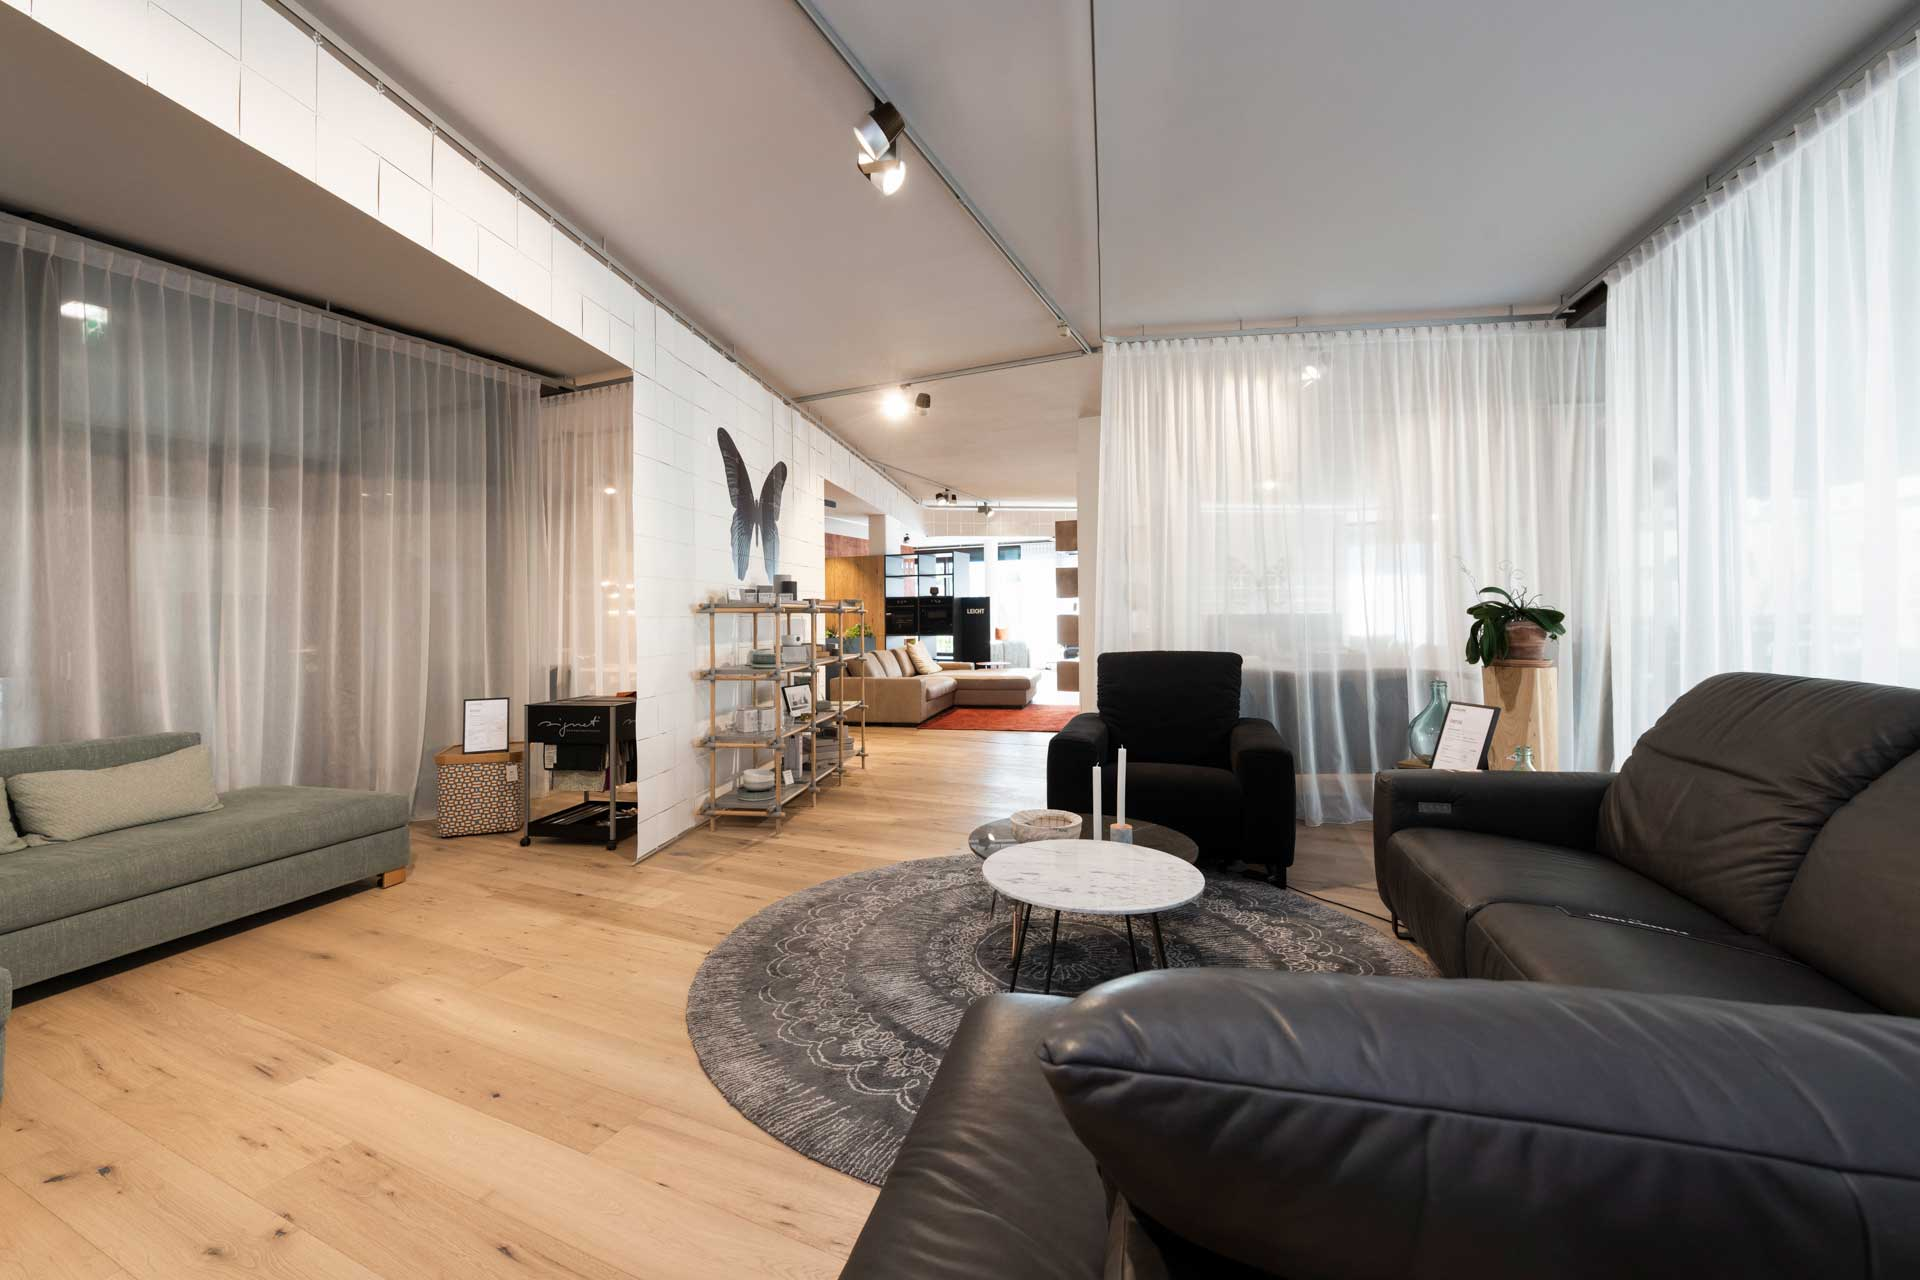 couchzone - Interior Design Innsbruck - Showroom